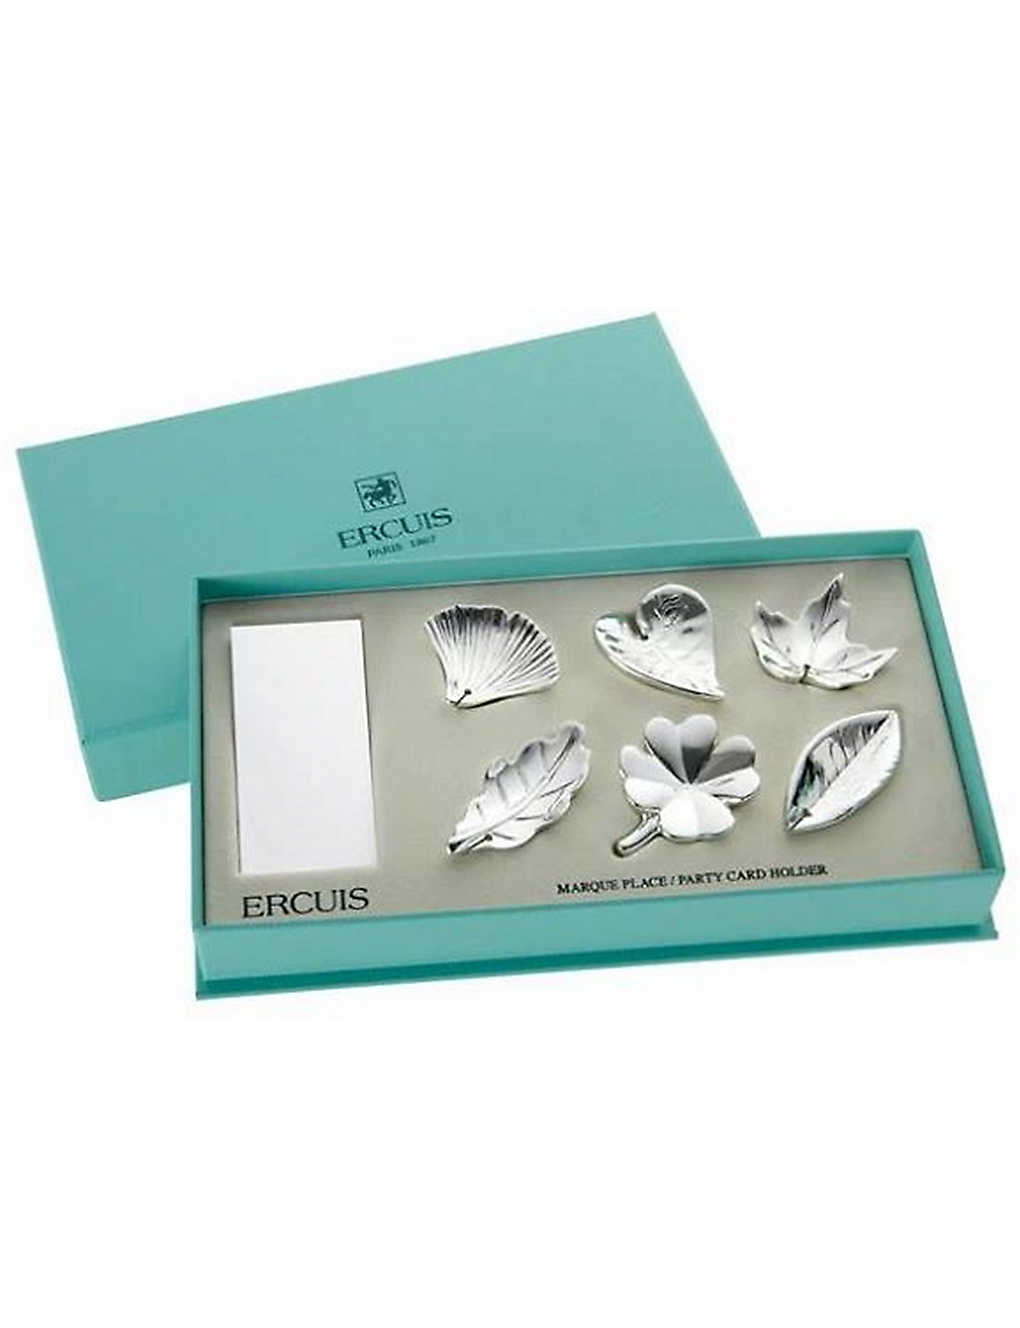 ERCUIS: Leaf silver-plated place-card holders set of six